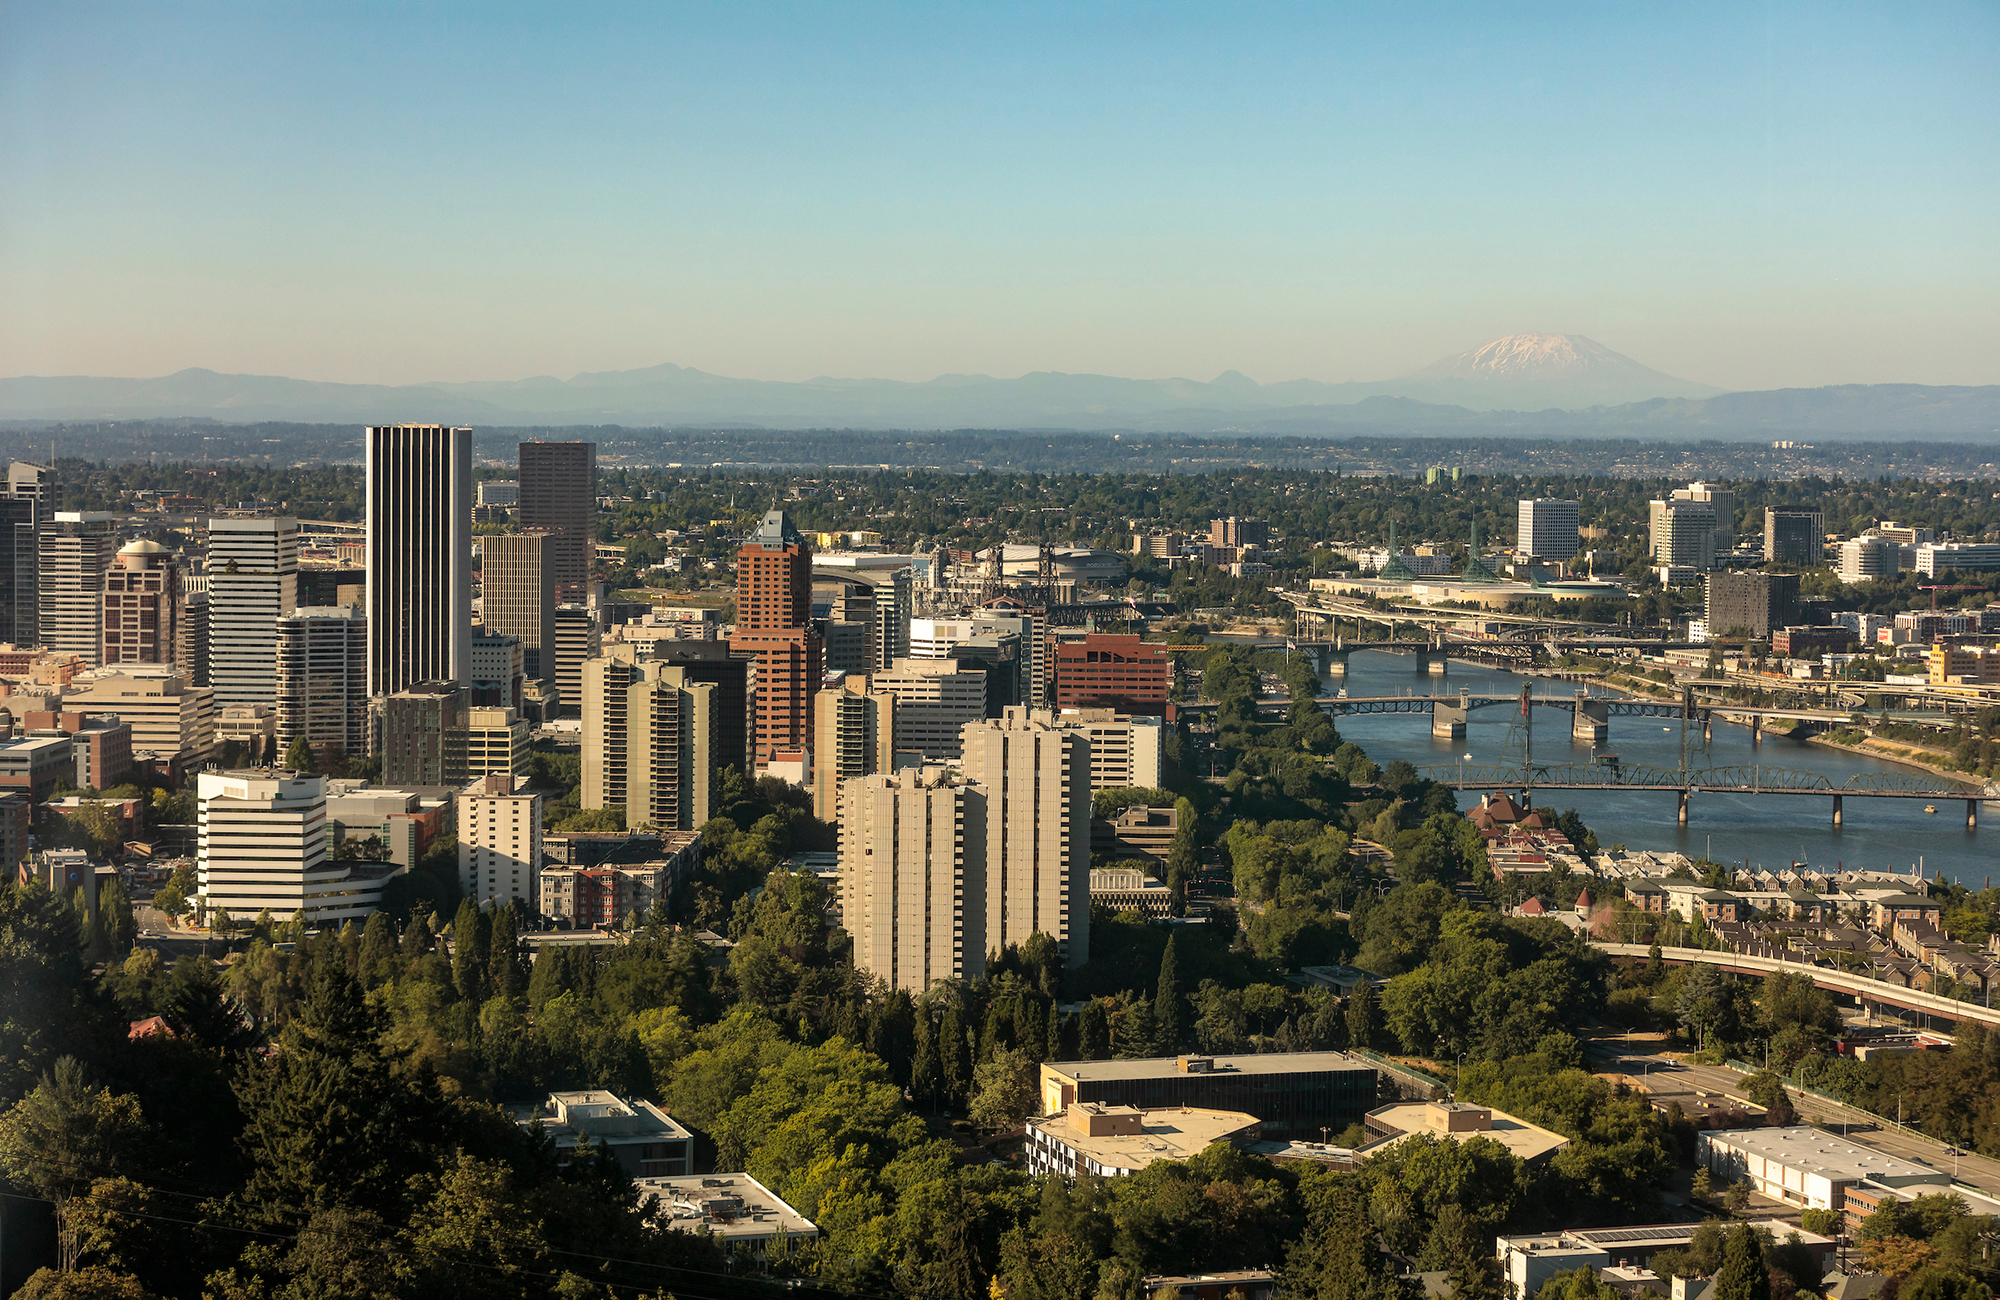 aerial view of the Portland skyline